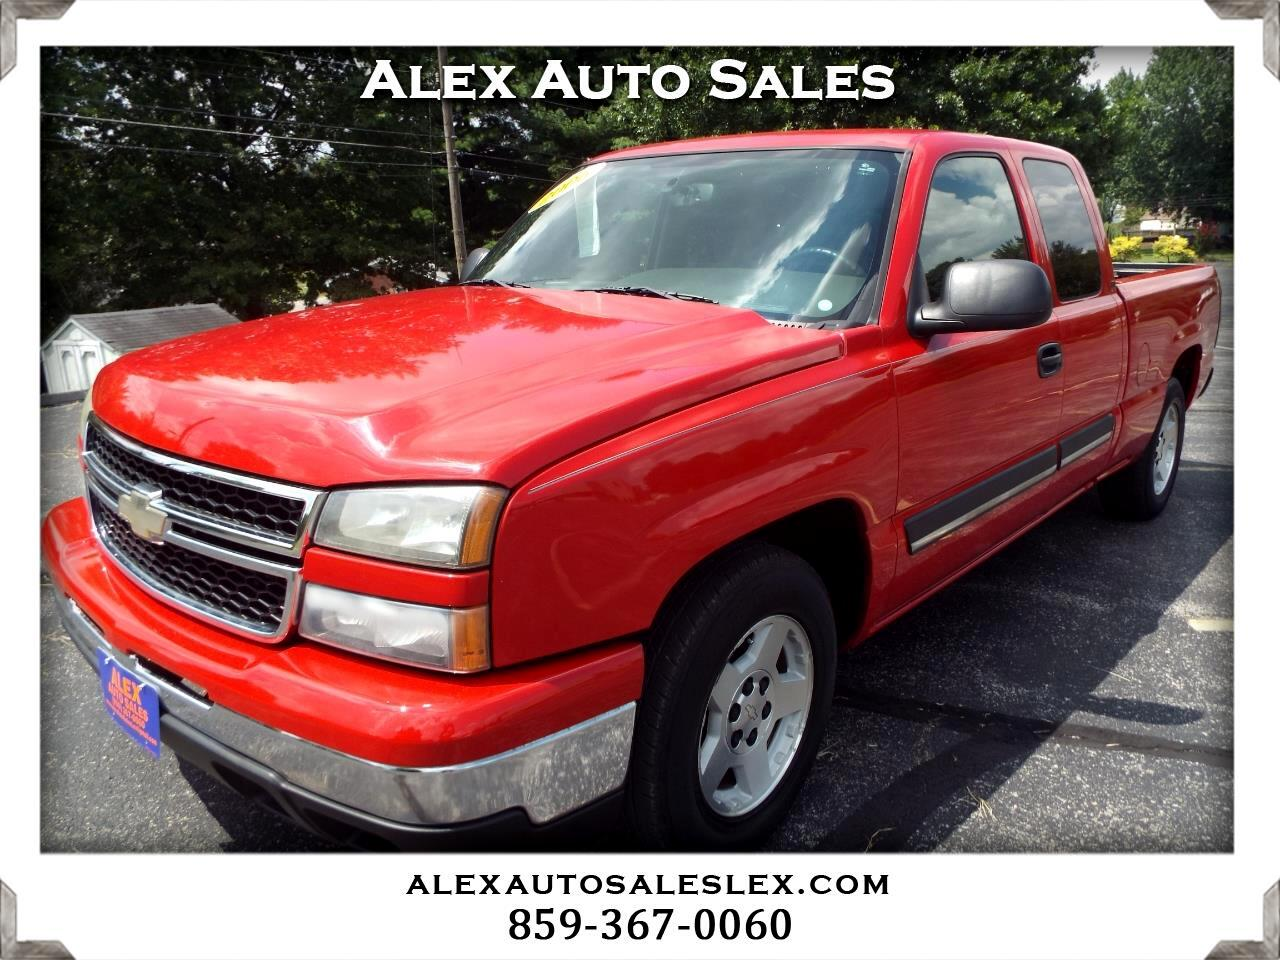 Chevrolet Silverado 1500 LT3 Ext. Cab Short Bed 2WD 2006